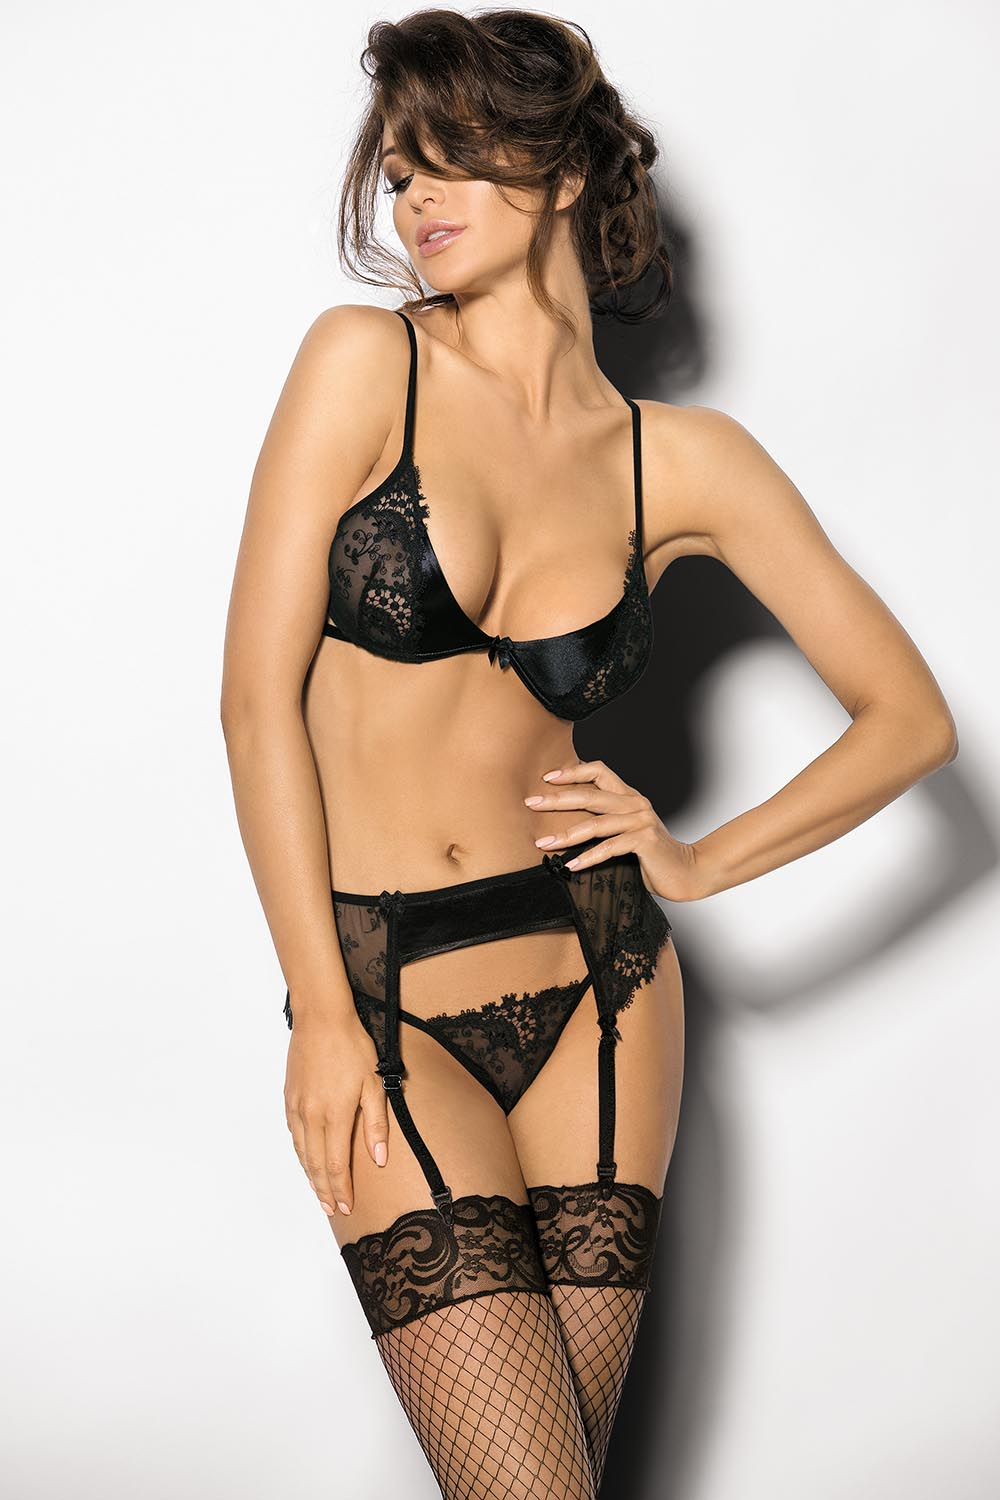 Aquilo Seductive Black Bra&Panty&Belt Set - EVOLESCENT